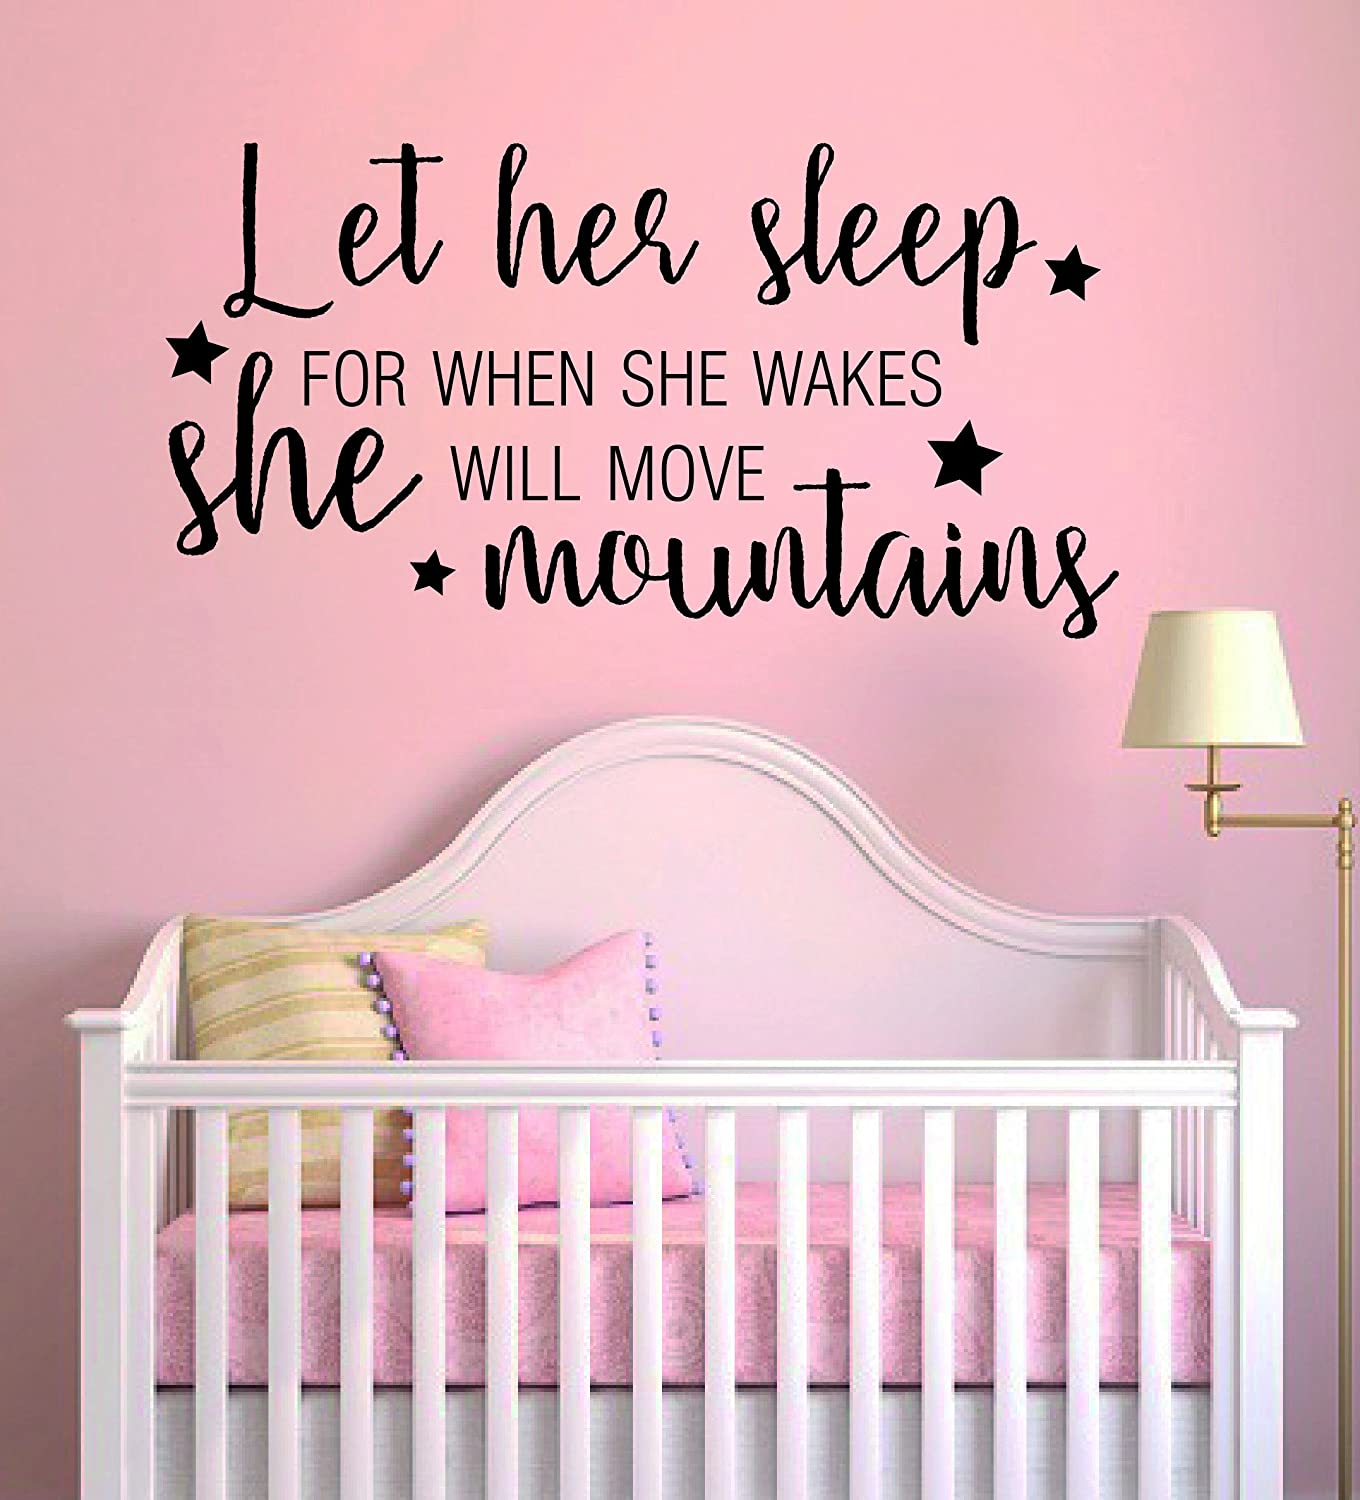 Let Her Sleep for When She Wakes She Will Move Mountains Quote Mural Wall Decal Sticker for Home Childrens Bedroom Wide 32x19 Height J242 Nursery Wall Decal for Baby Room Decorations